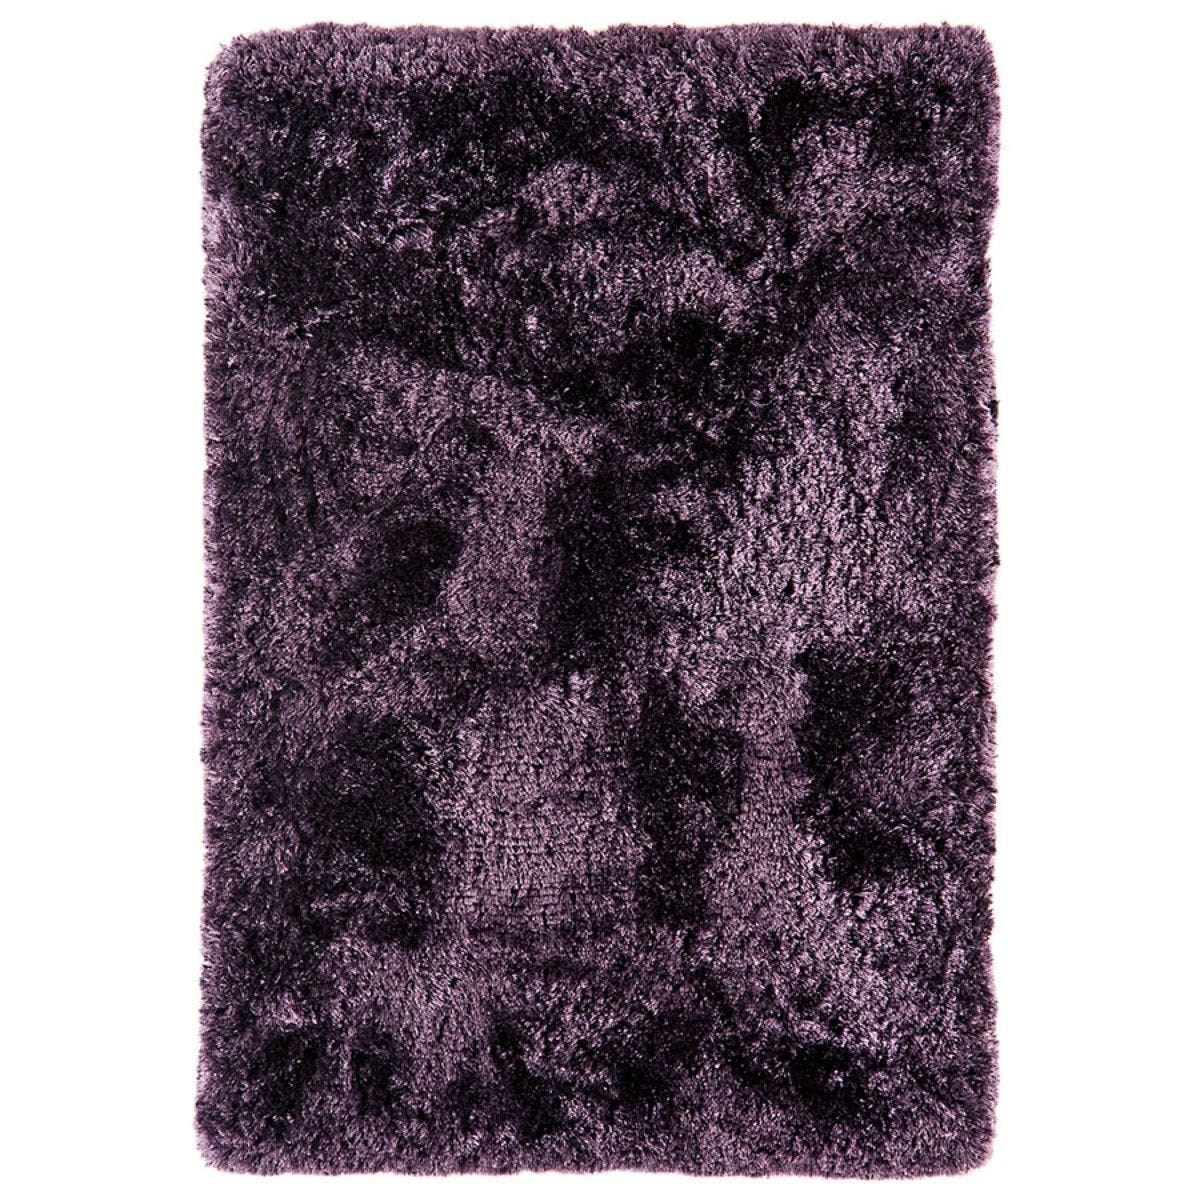 Asiatic Plush Shaggy Rug, 200 x 300cm - Purple